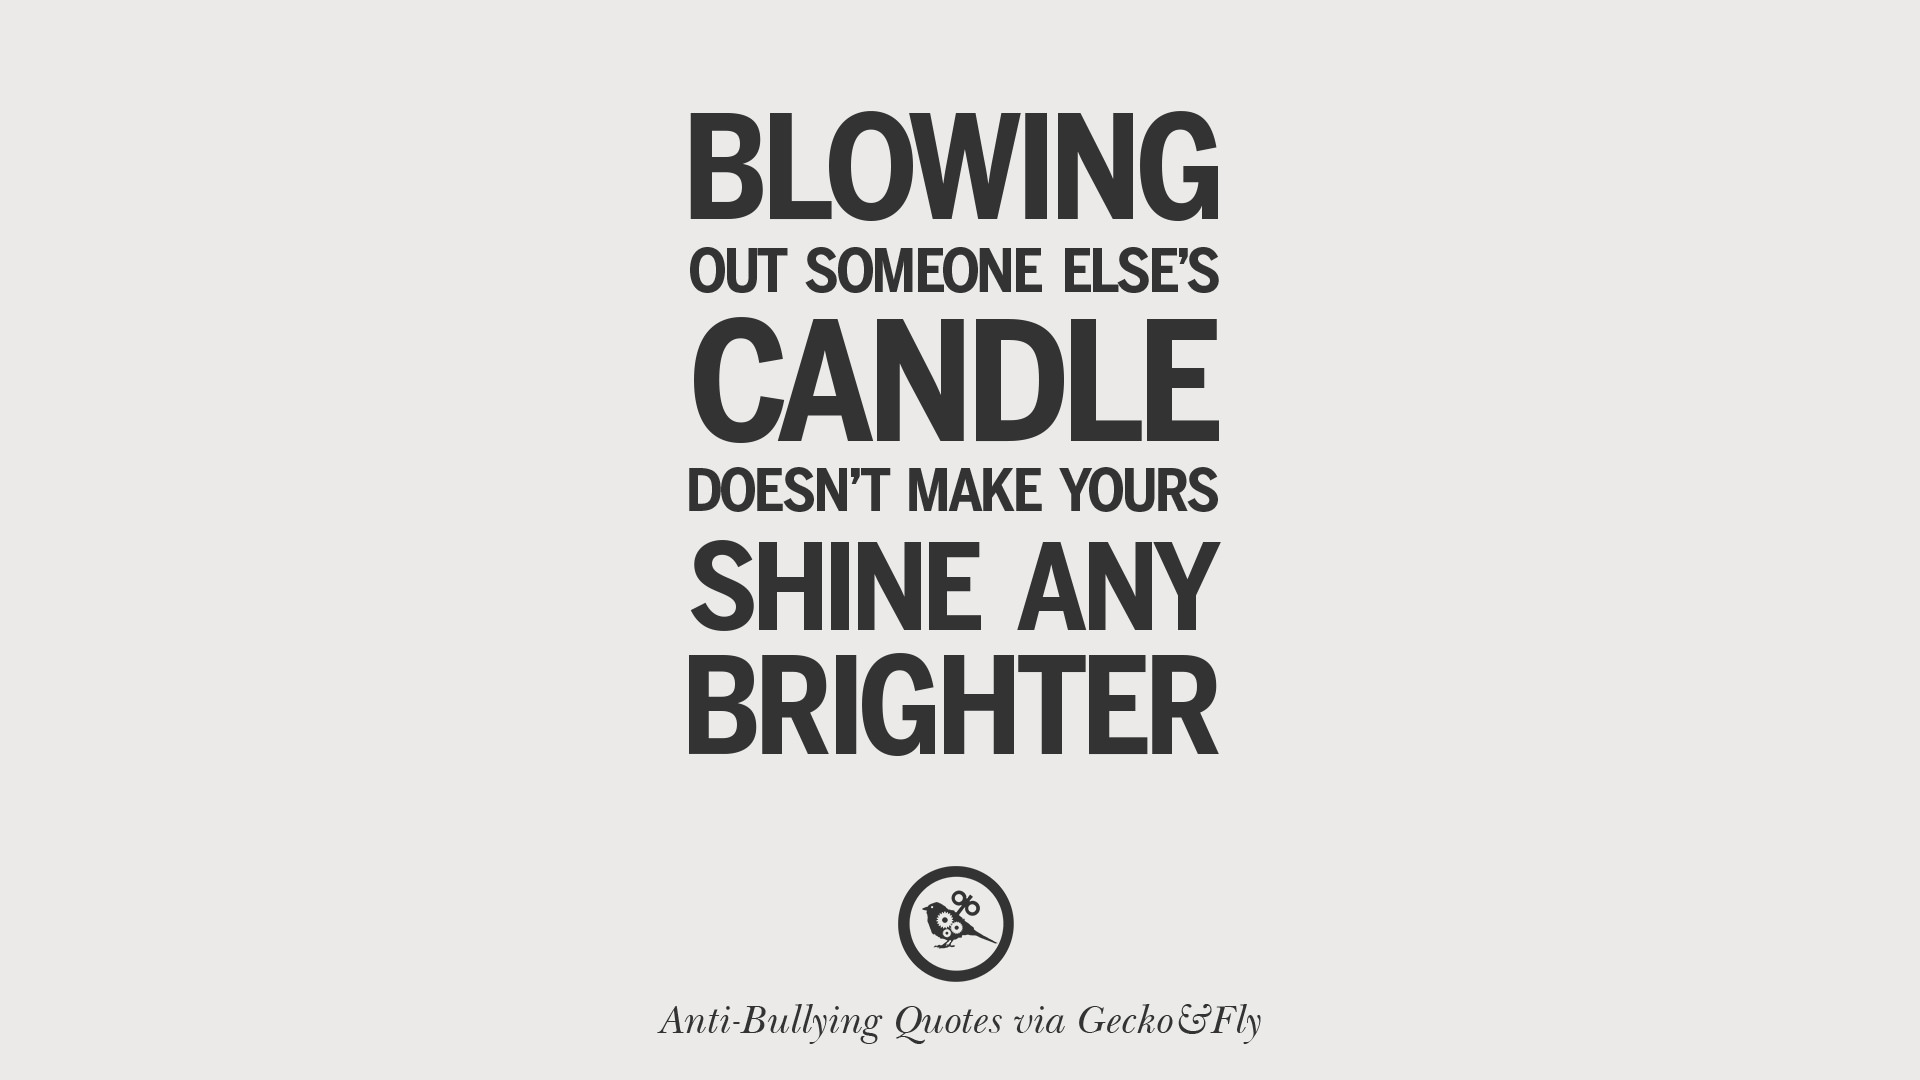 Cyber Bullying Quotes 12 Quotes On Anti Cyber Bulling And Social Bullying Effects